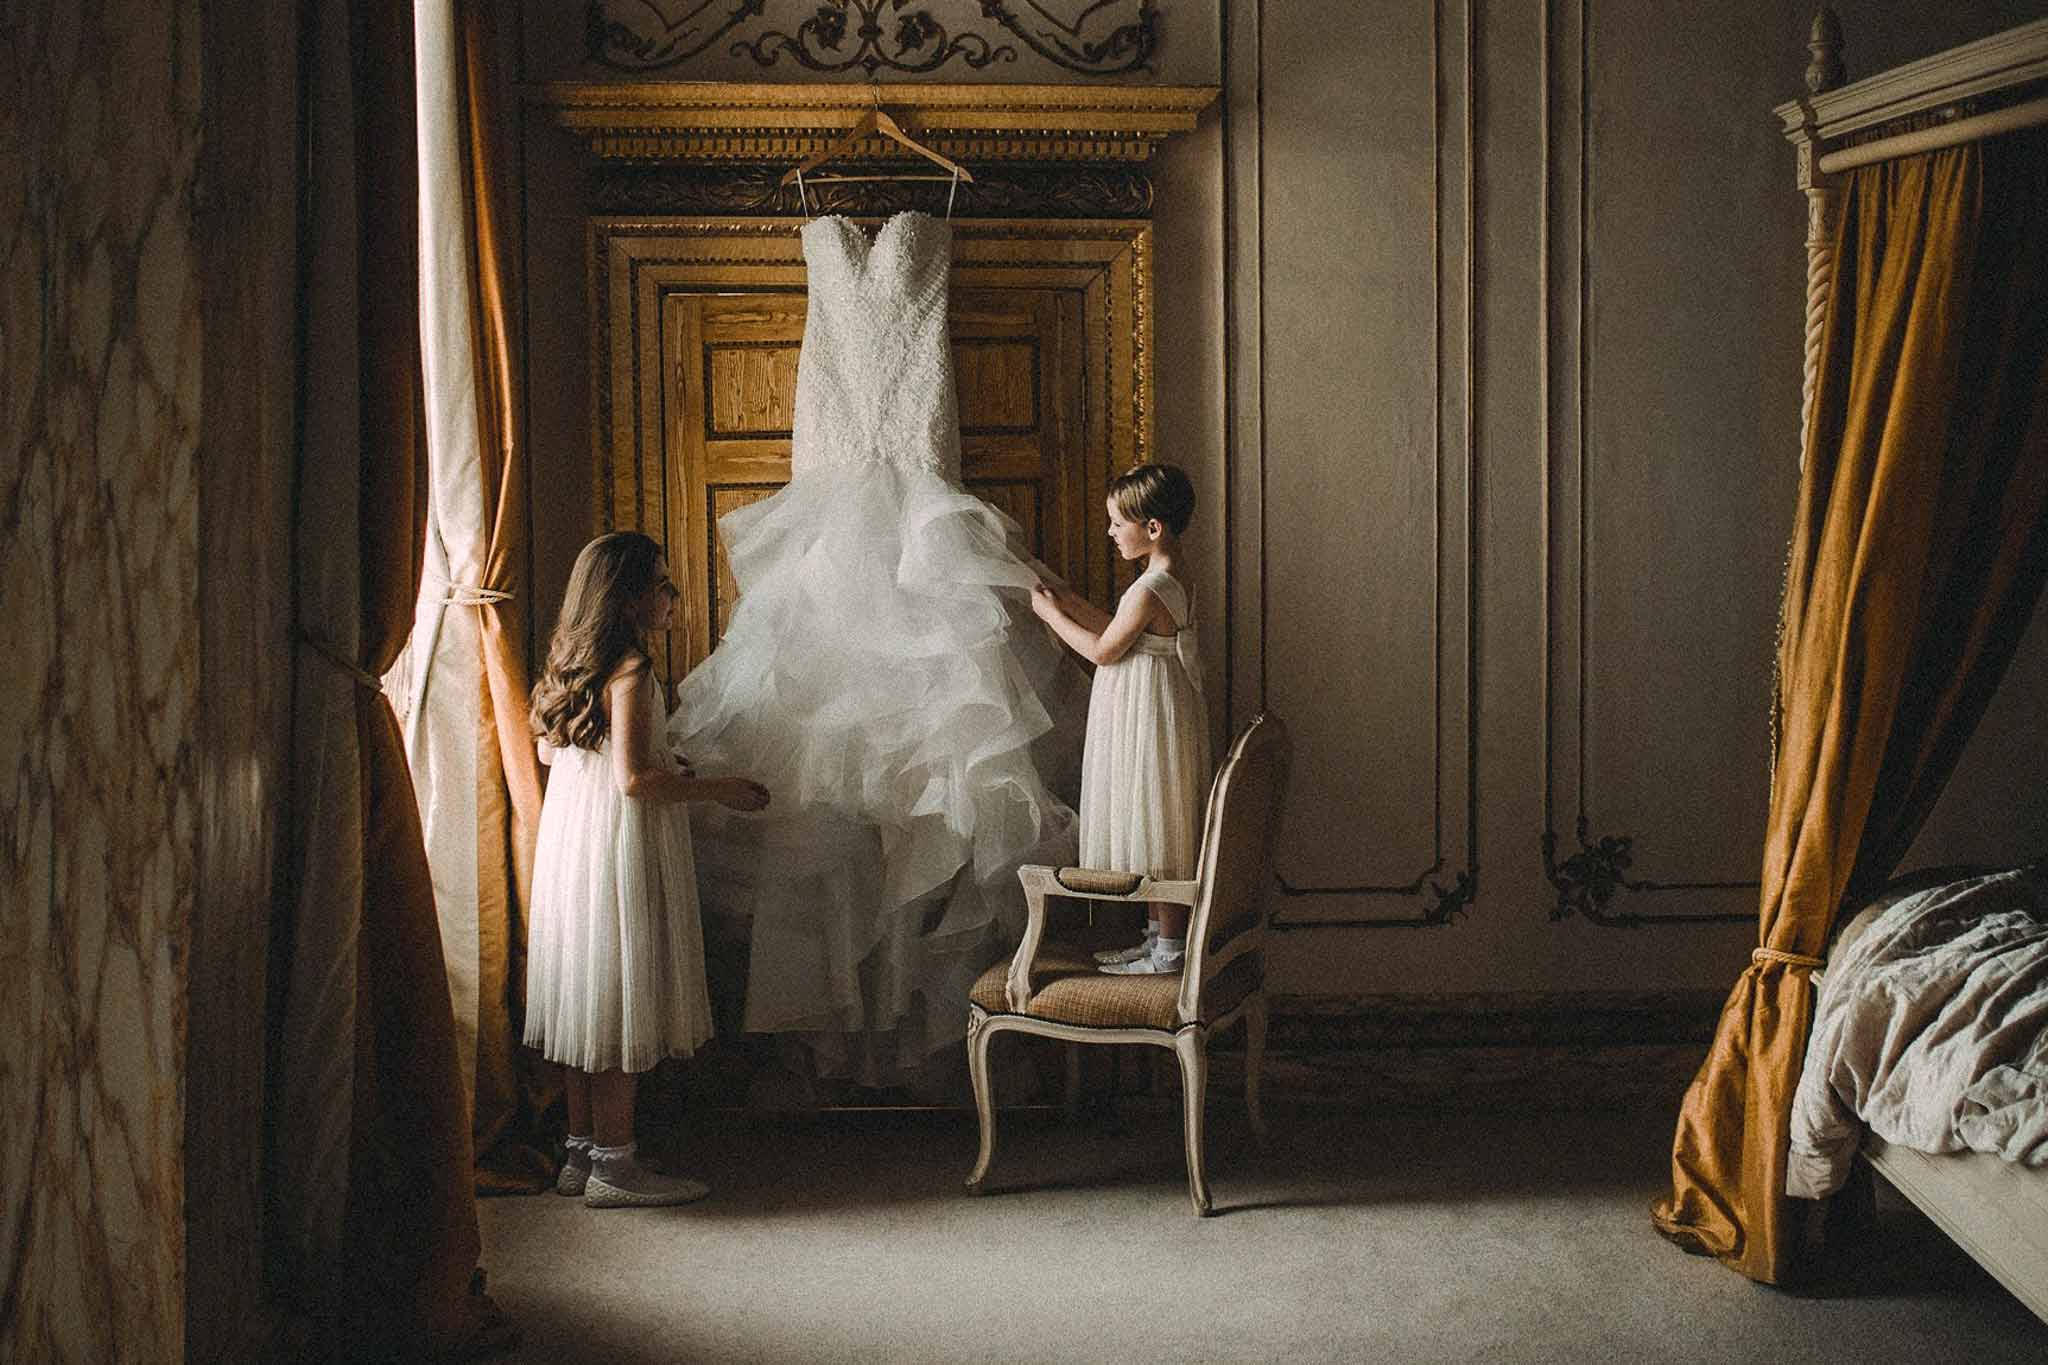 Two young children looking at the brides wedding dress